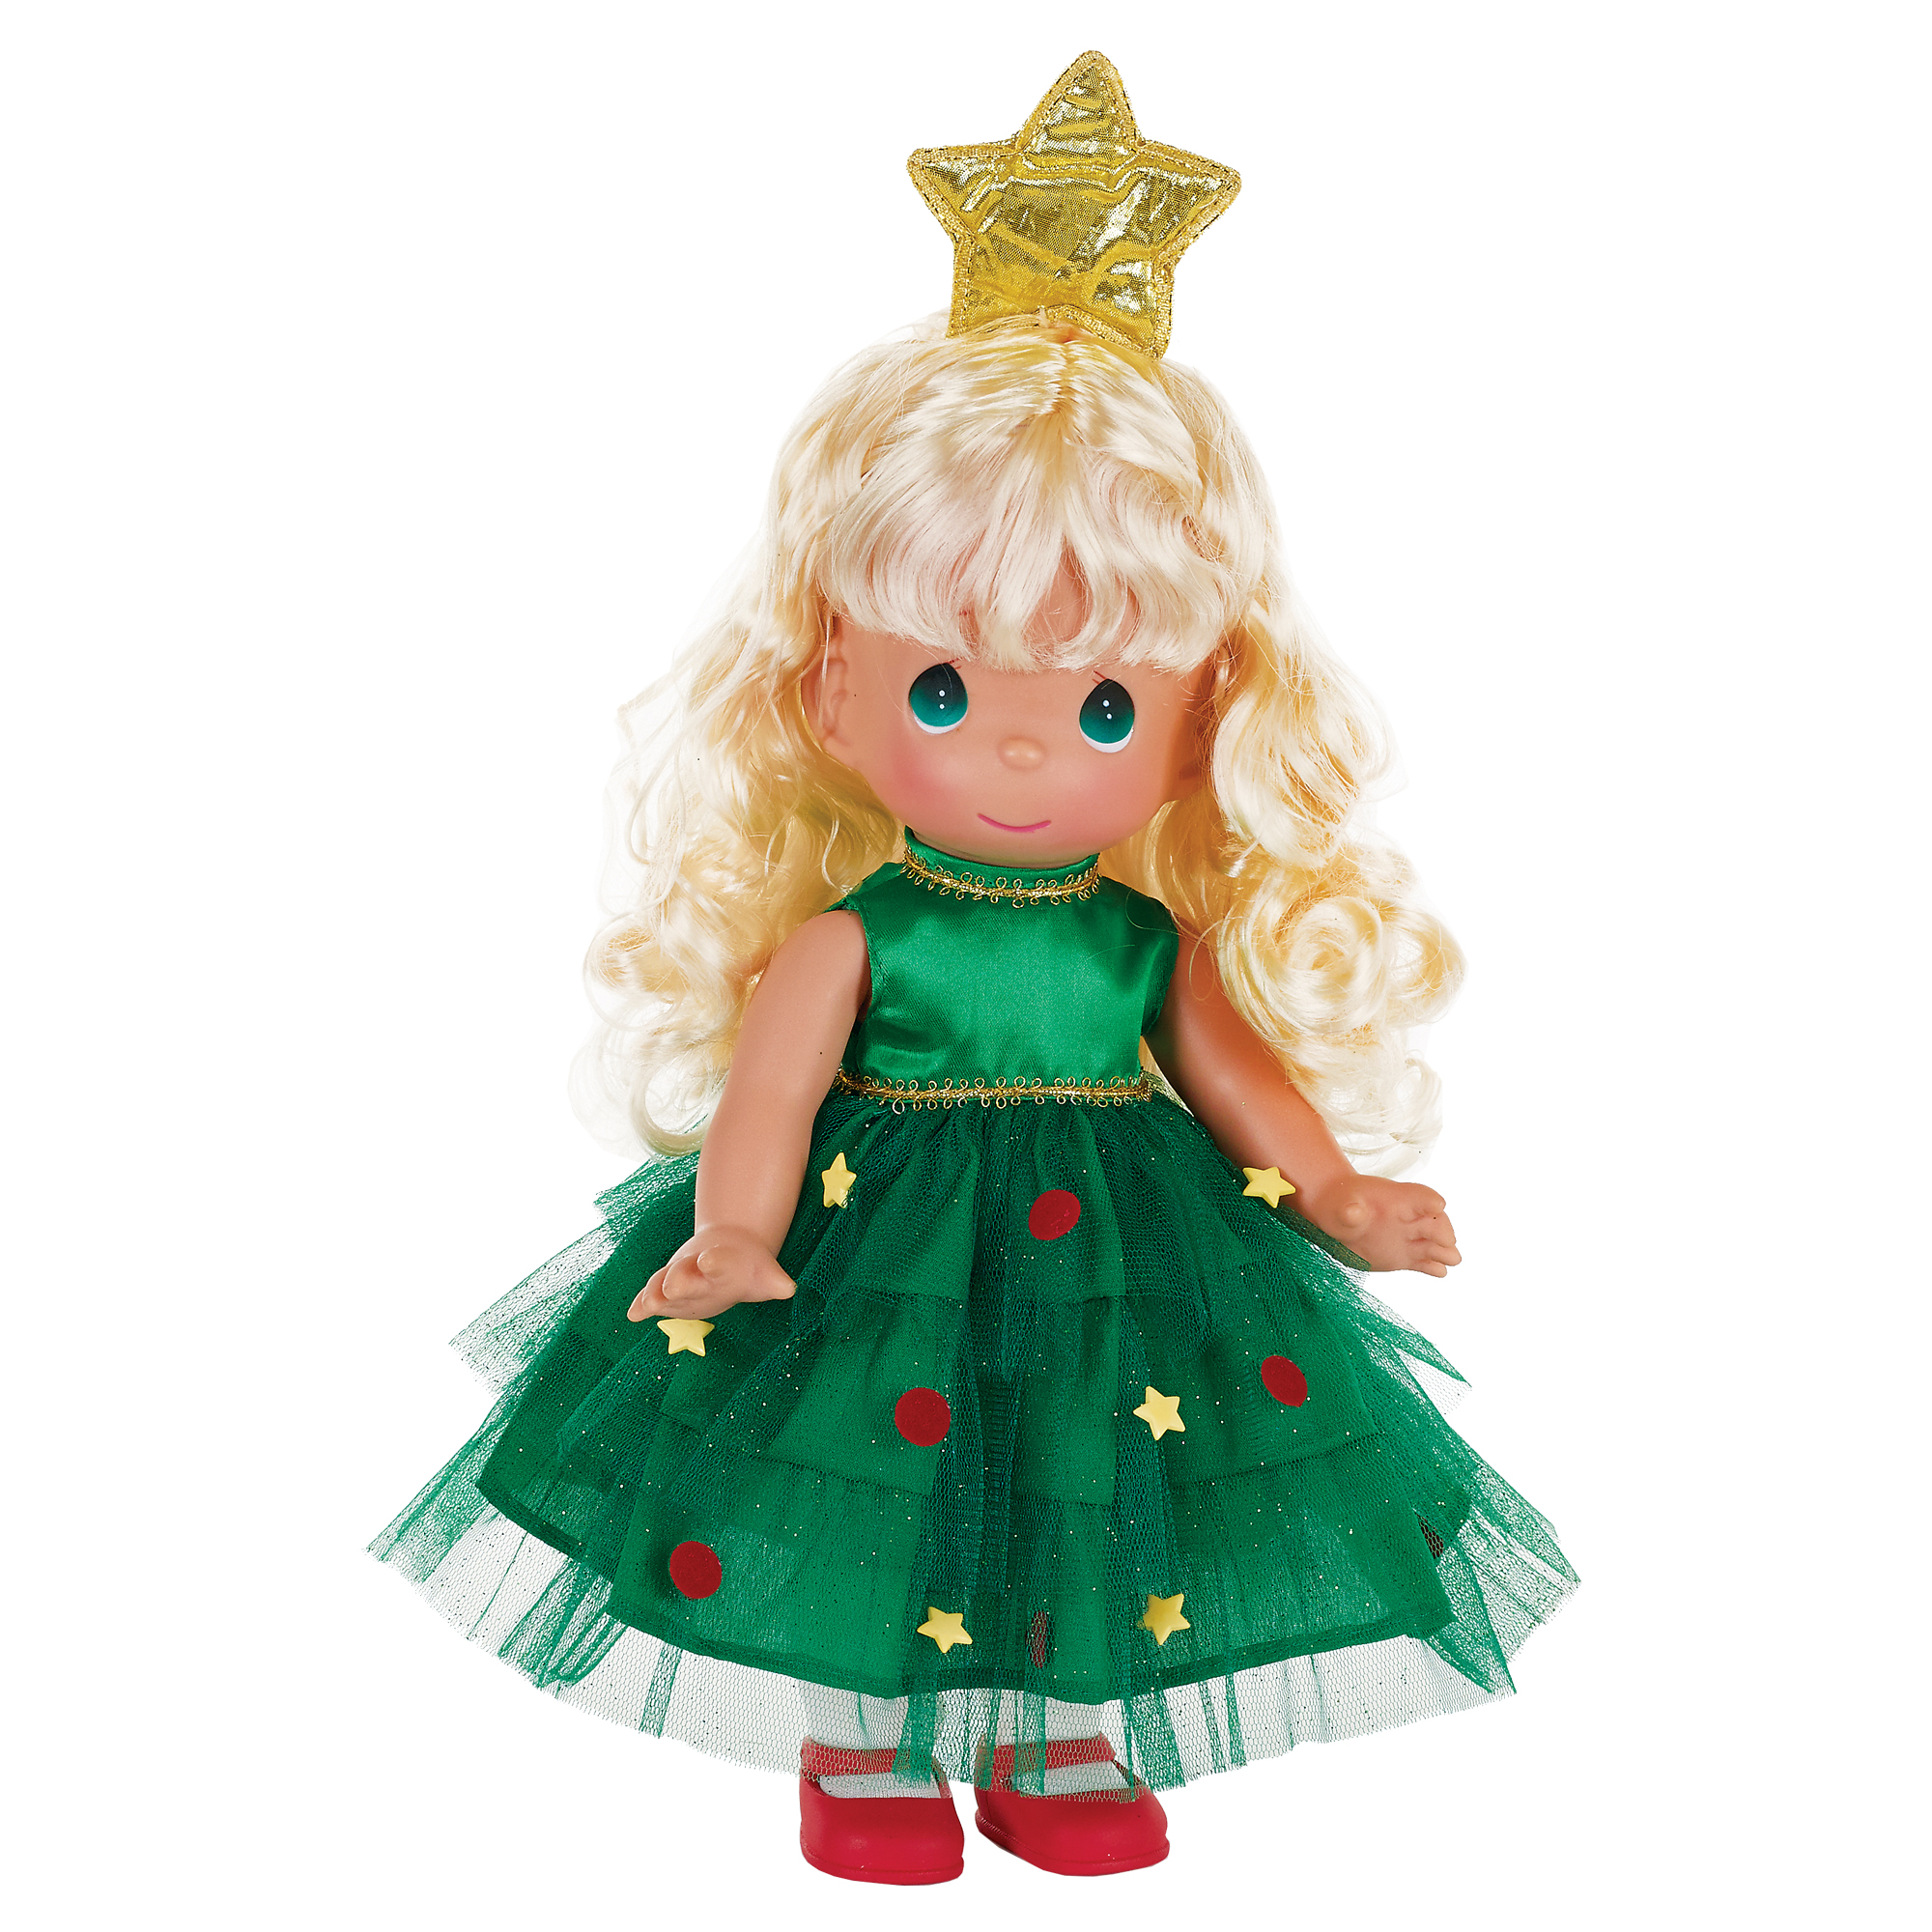 Precious Moments Dolls by The Doll Maker, Linda Rick, Tree-Mendously Precious, Blonde, Christmas, 12 inch doll